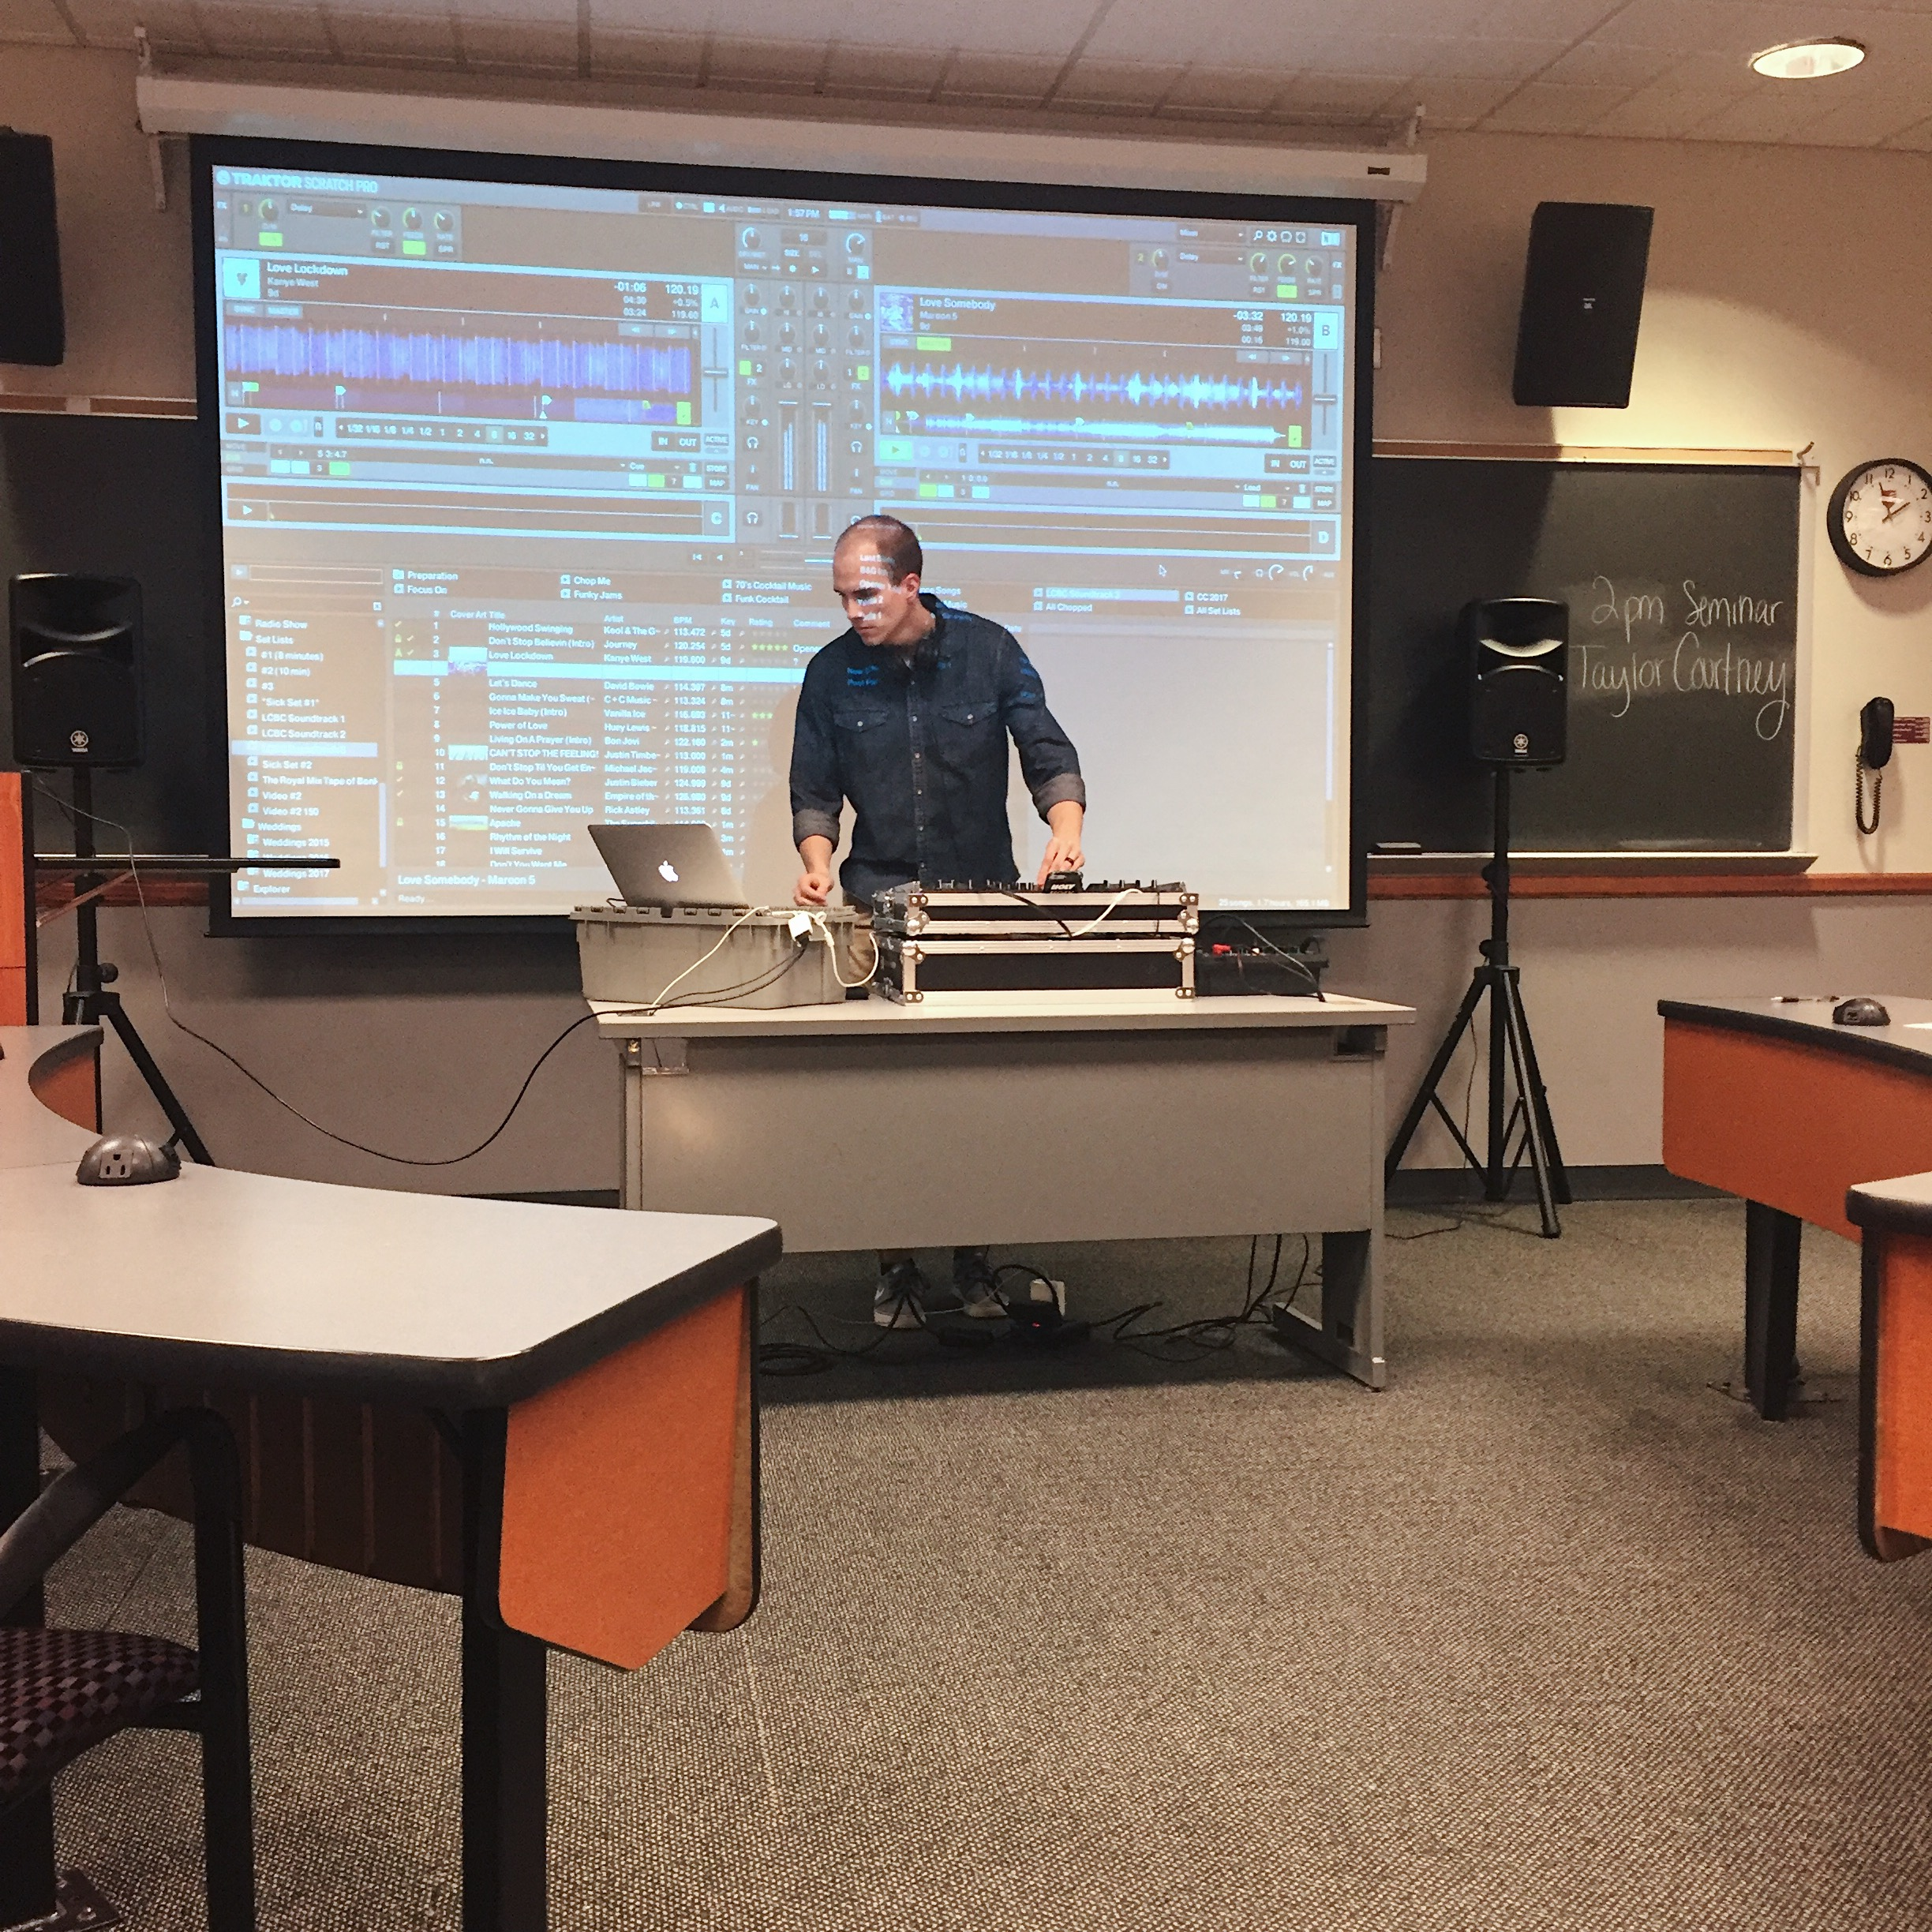 Two weekends ago I had the fun opportunity to talk about DJ'ing to a group of college students at  @grovectycollege . Before speaking I became nervous. I wasn't nervous to give the presentation, I was afraid no one would show up and that several hours of driving would have been spent on no one. Luckily over twenty students attended and I had an absolute blast!